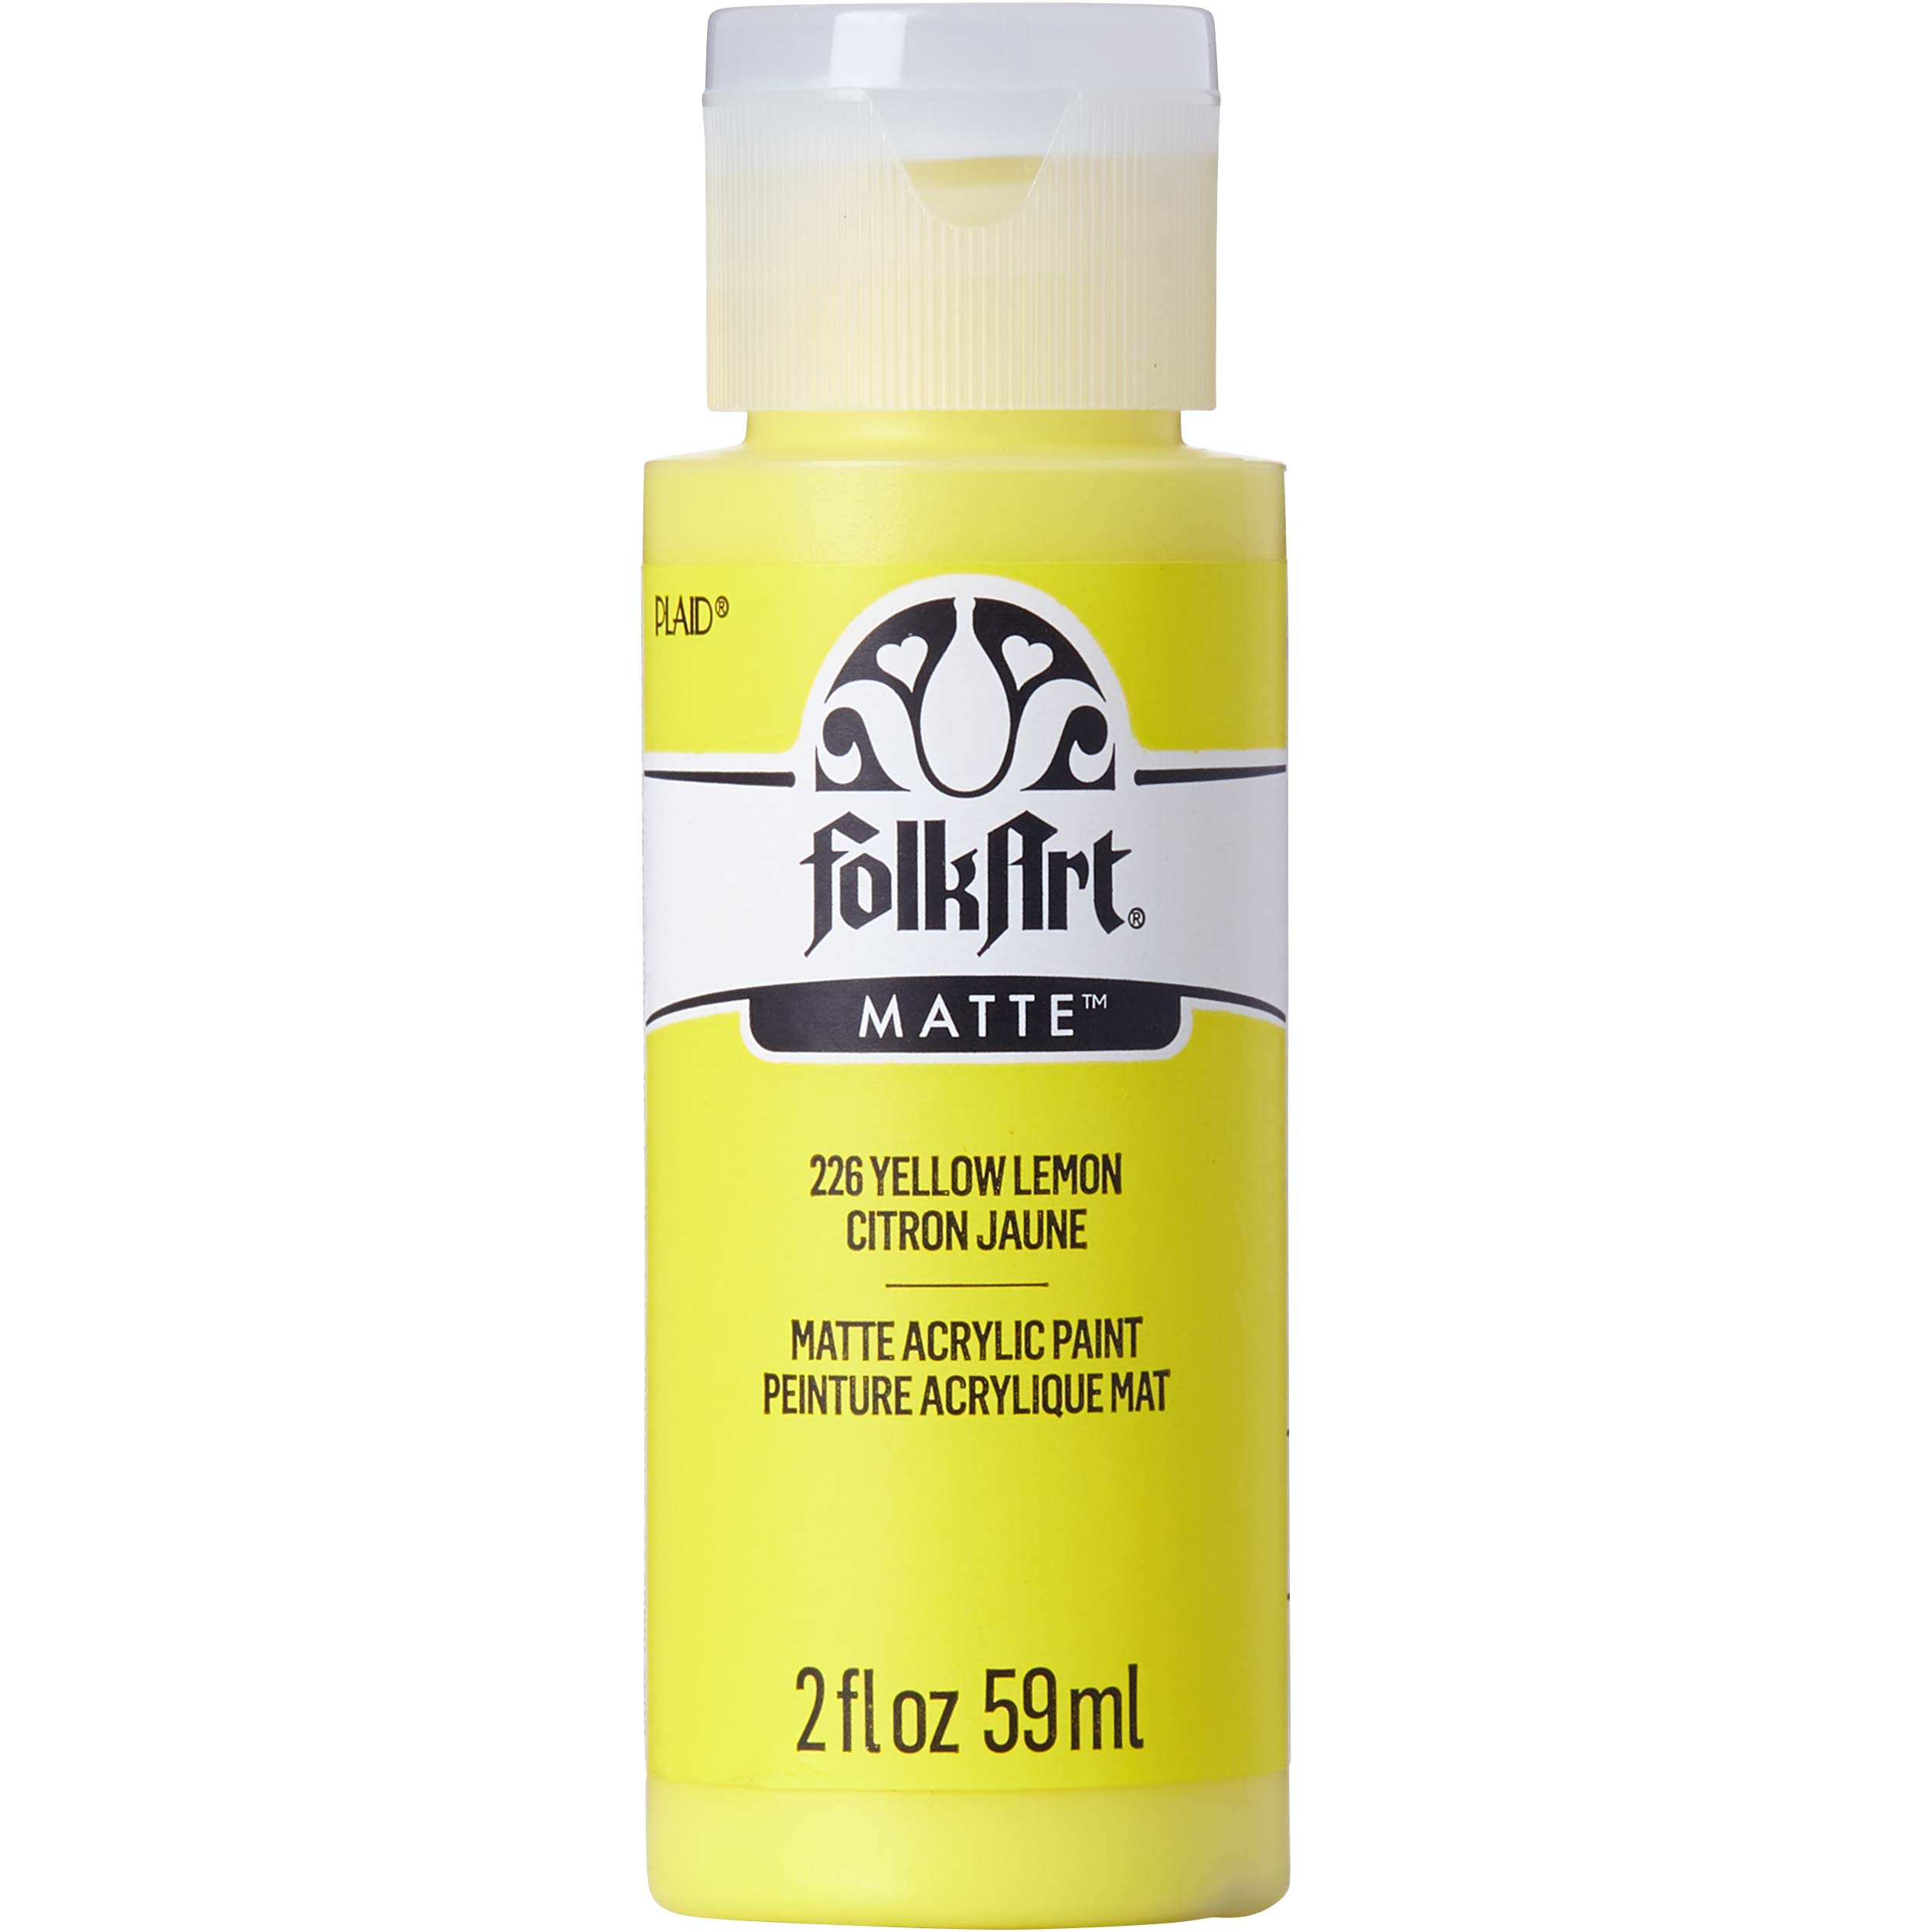 FolkArt ® Acrylic Colors - Yellow Lemon, 2 oz. - 226